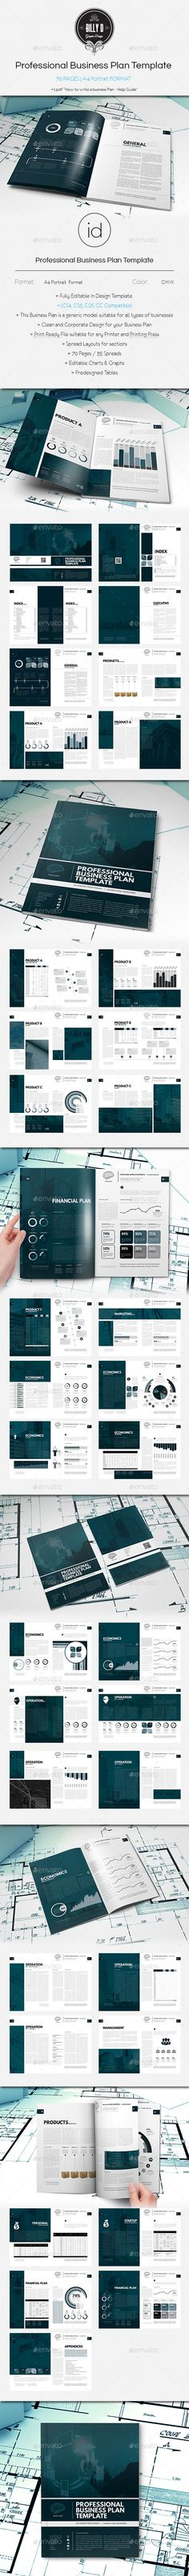 Professional Digital Business Plan Template  Business Planning